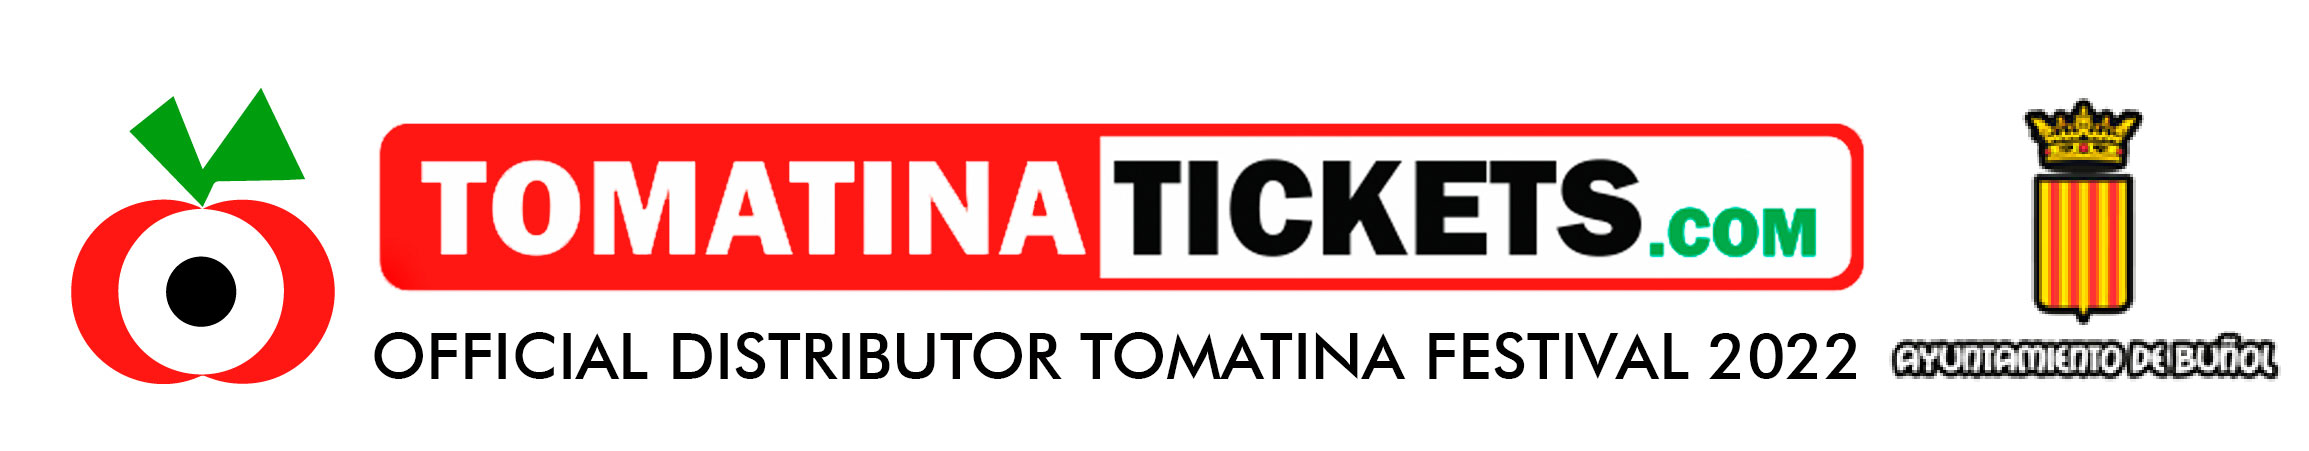 https://www.tomatinatickets.com